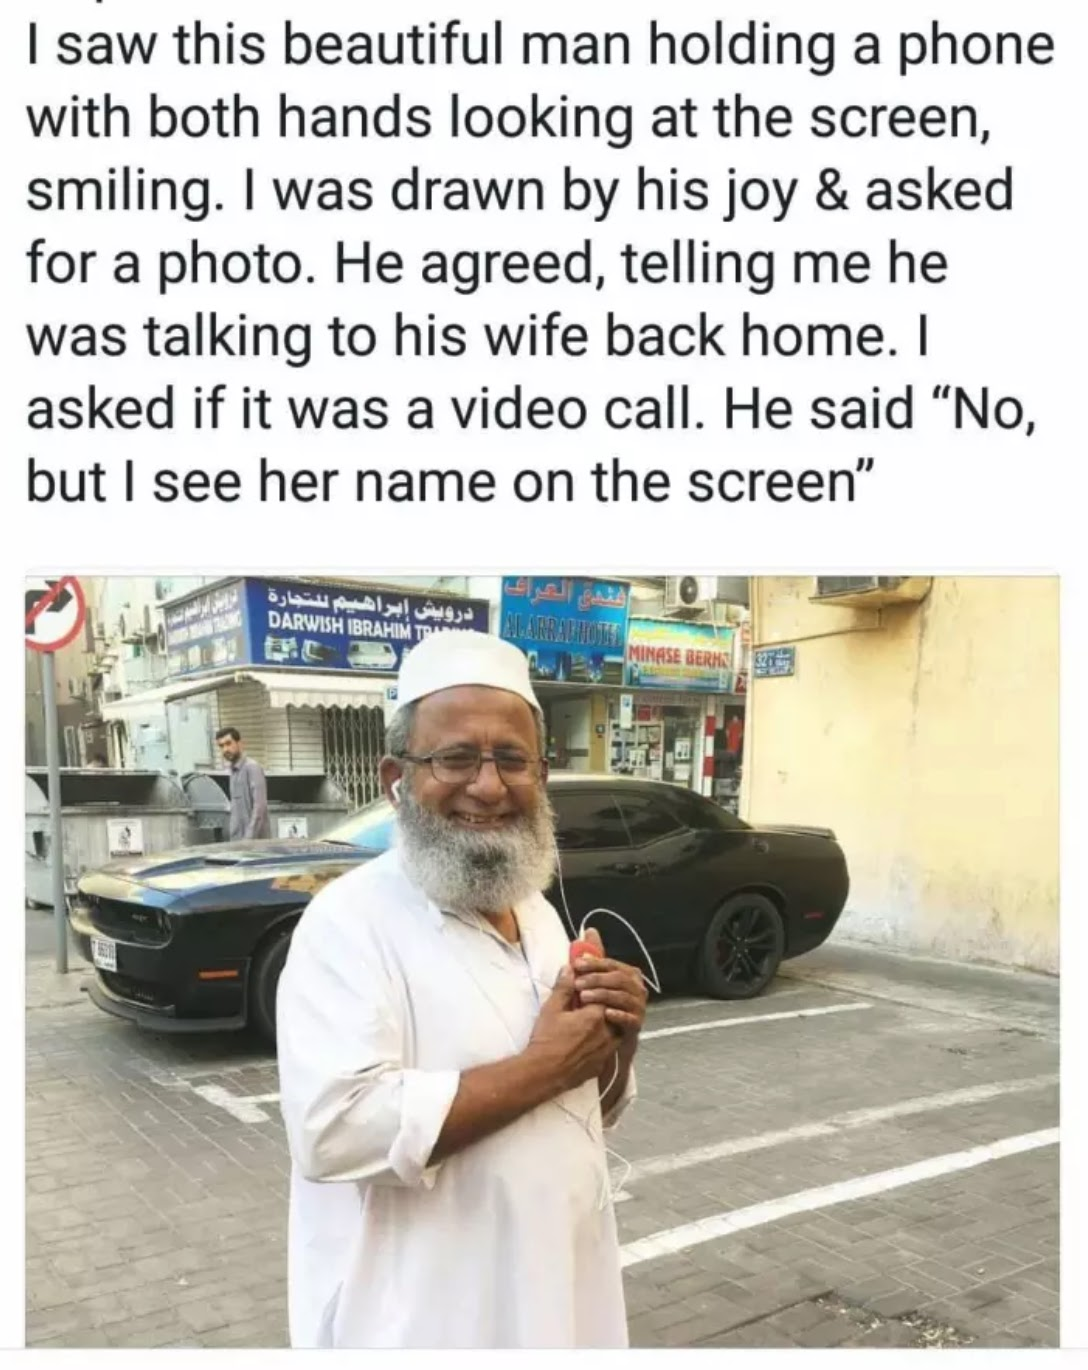 22 Heartwarming Photos That Made The World A Less Cruel Place For A Few Minutes